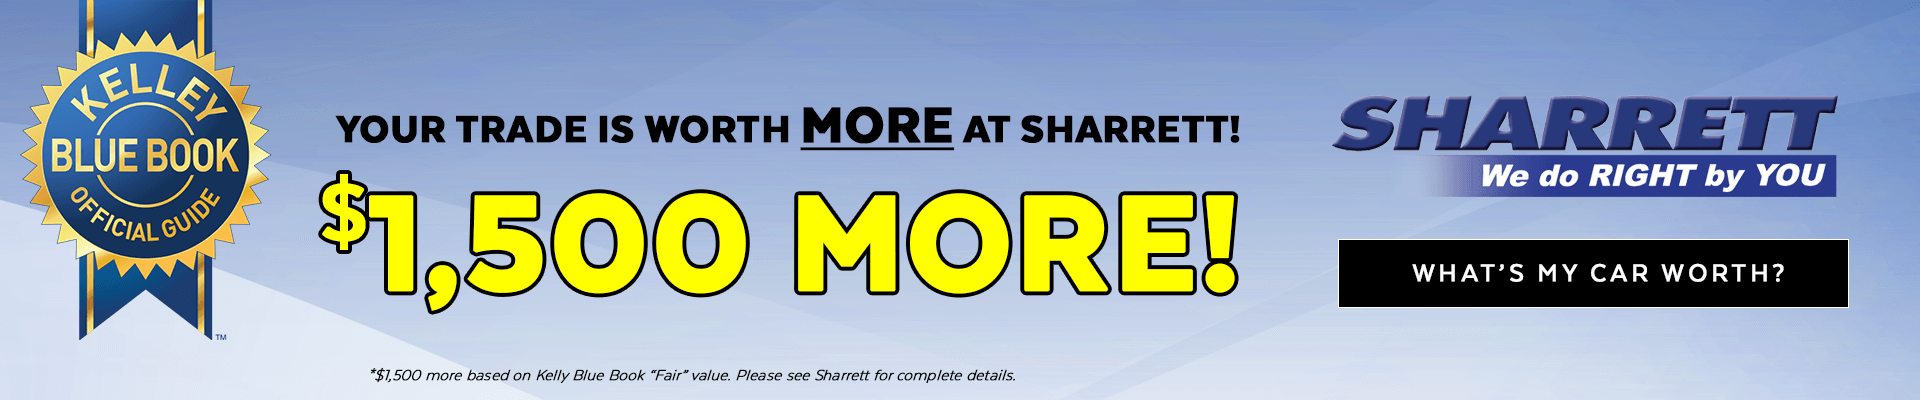 Your Trade is Worth More at Sharrett